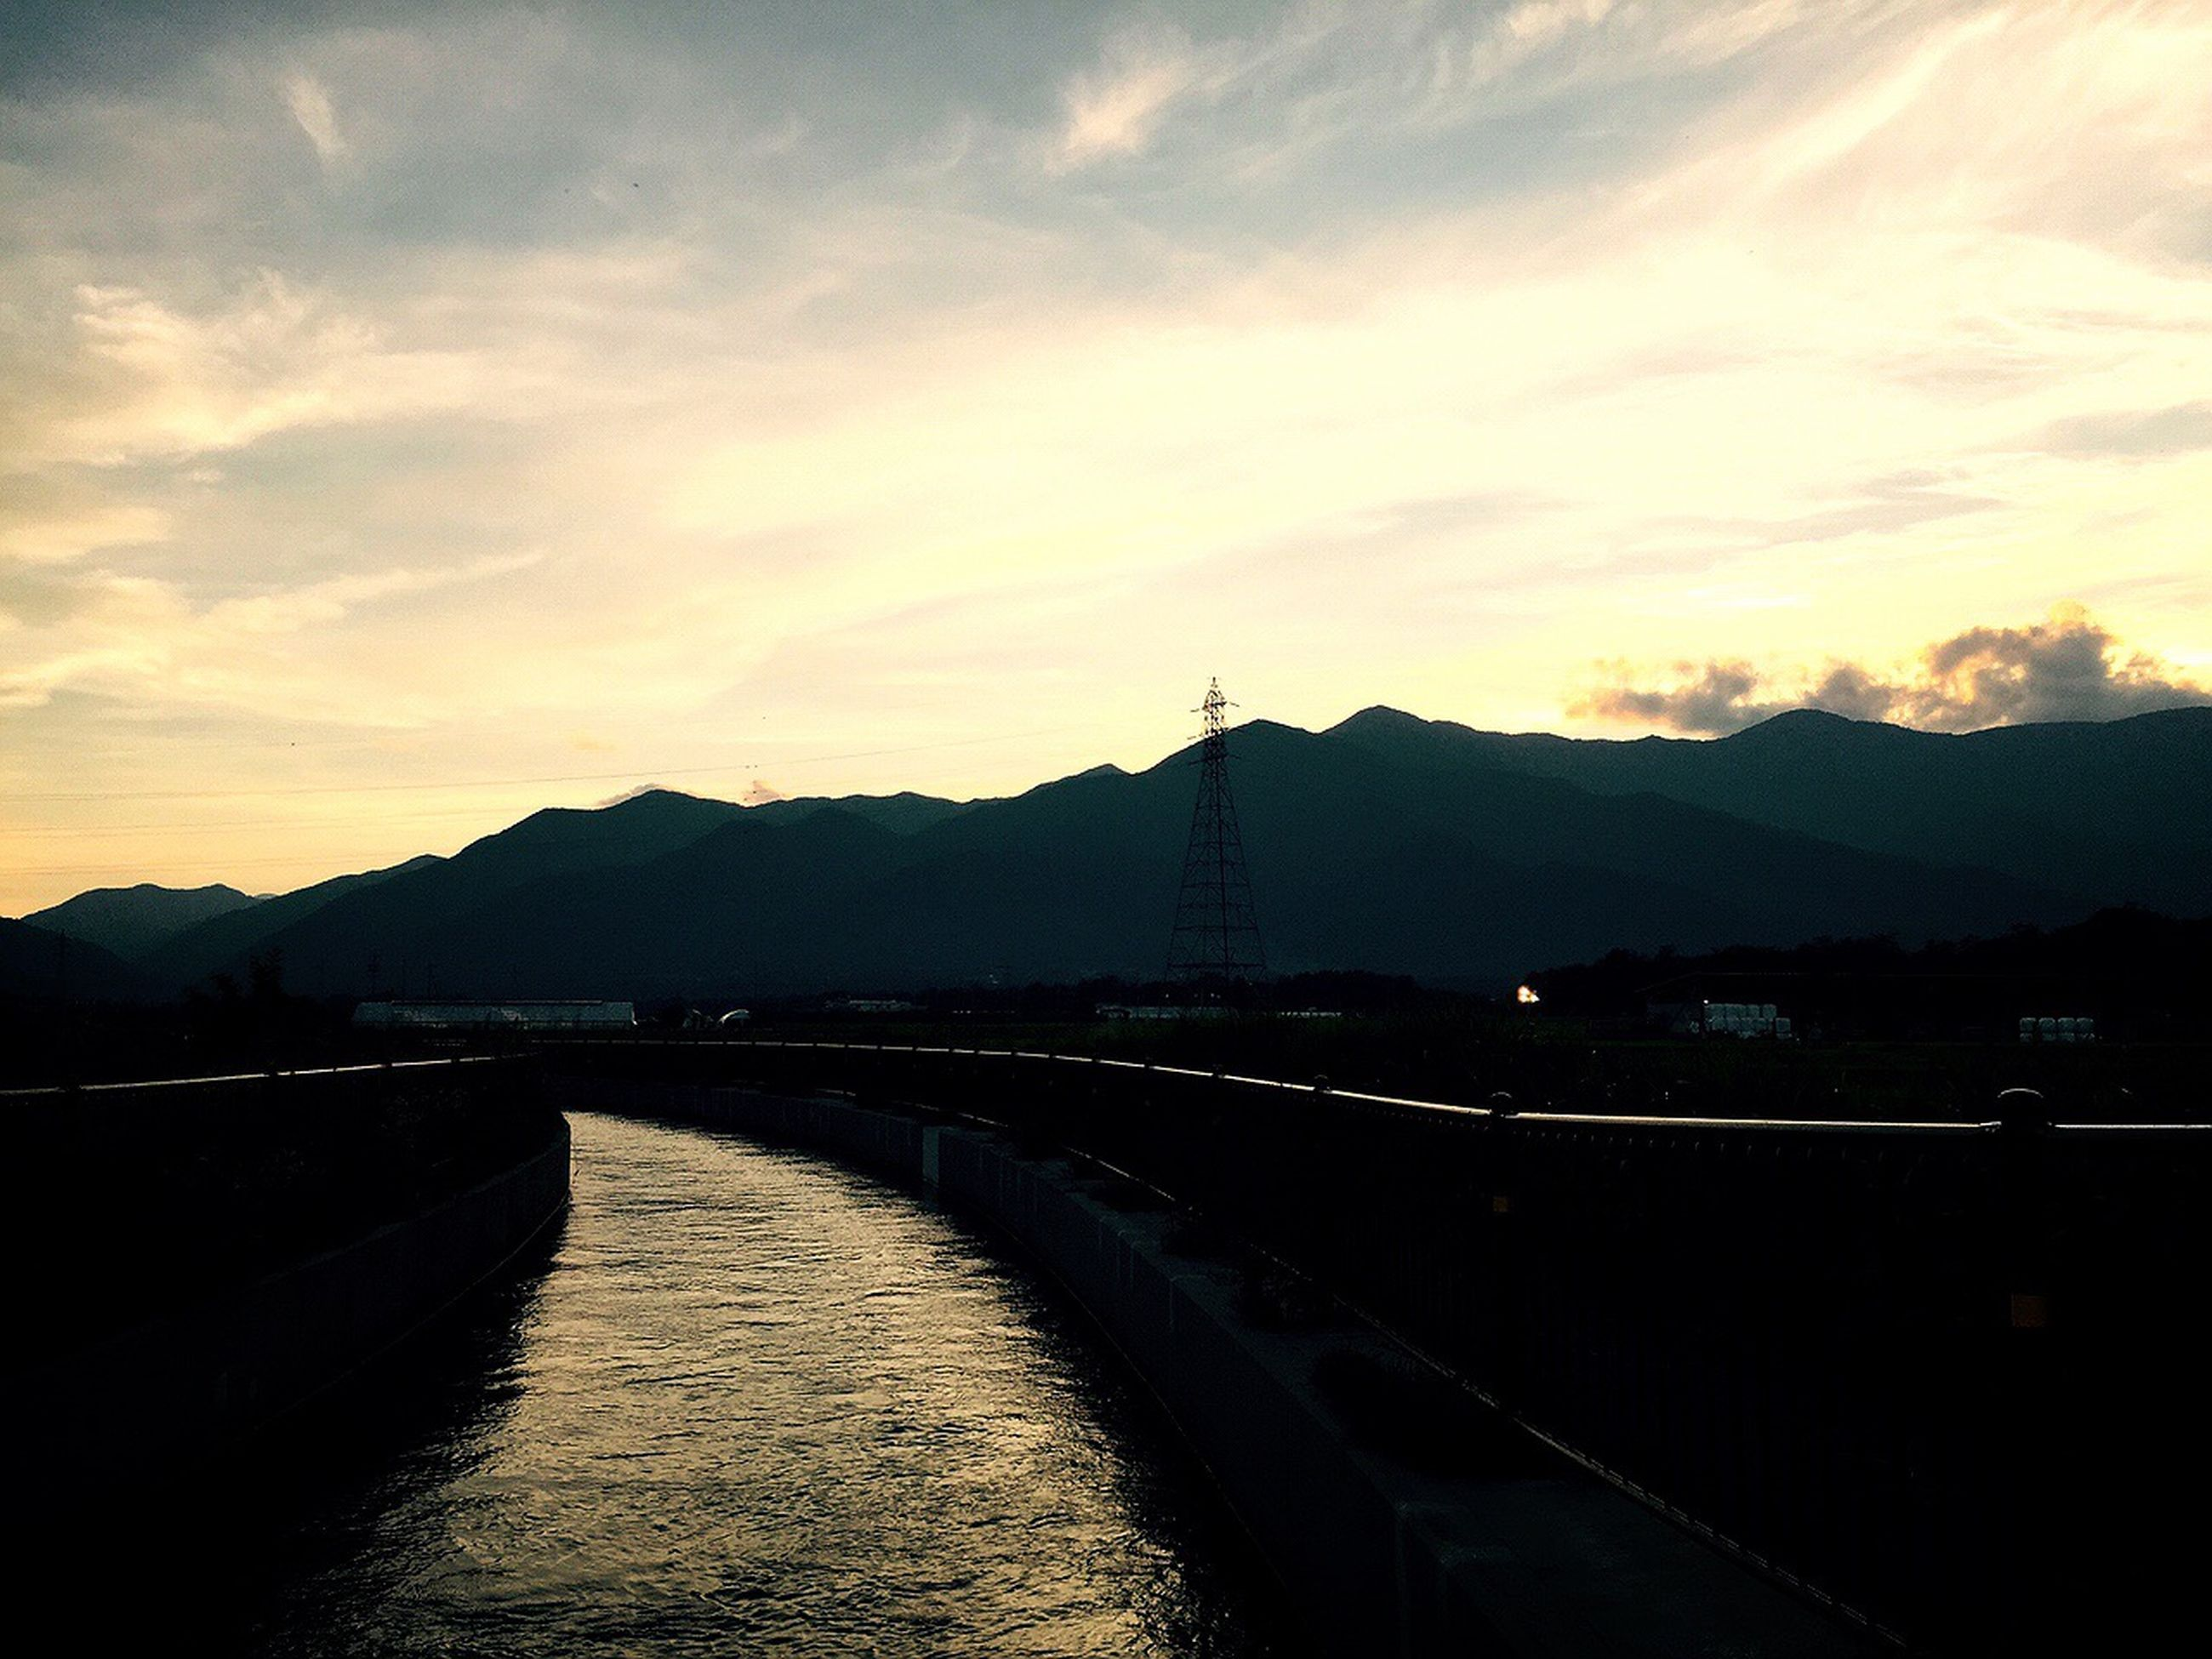 mountain, water, sky, sunset, mountain range, transportation, river, connection, bridge - man made structure, tranquility, tranquil scene, built structure, scenics, the way forward, cloud - sky, beauty in nature, road, dusk, nature, architecture